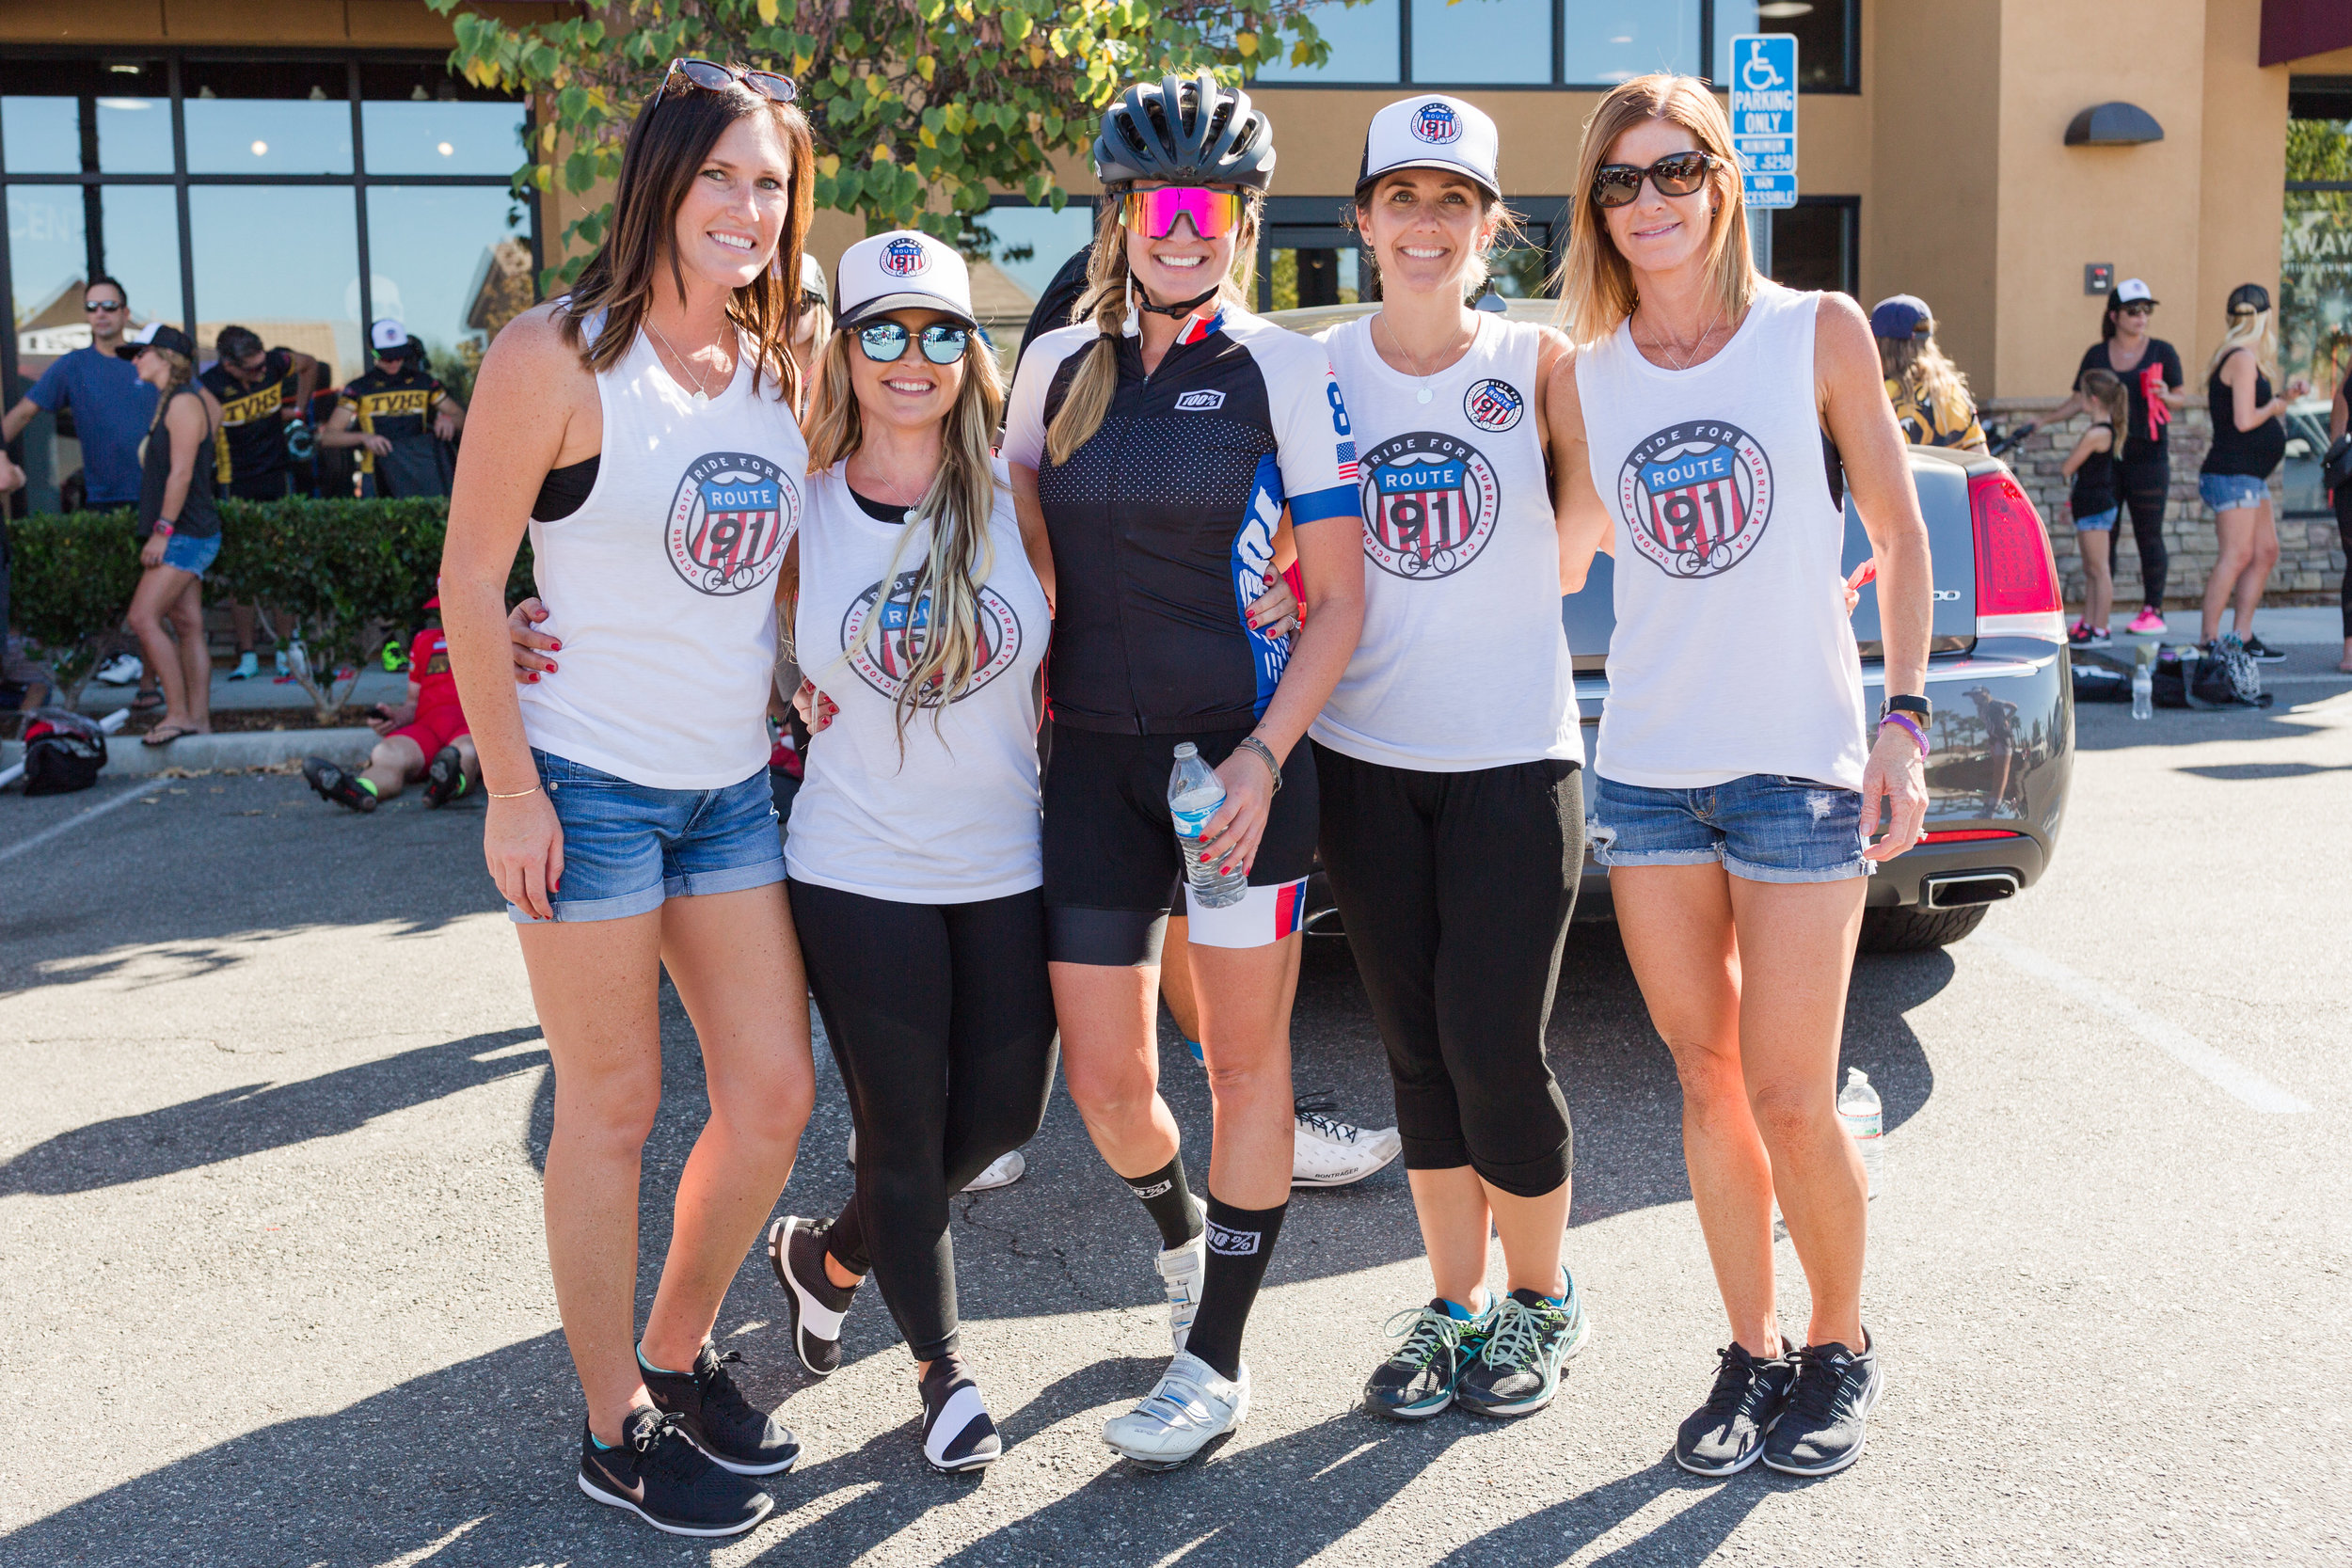 2017-10-28_Ride For Route 91-Matty Fran Photography-0384.jpg